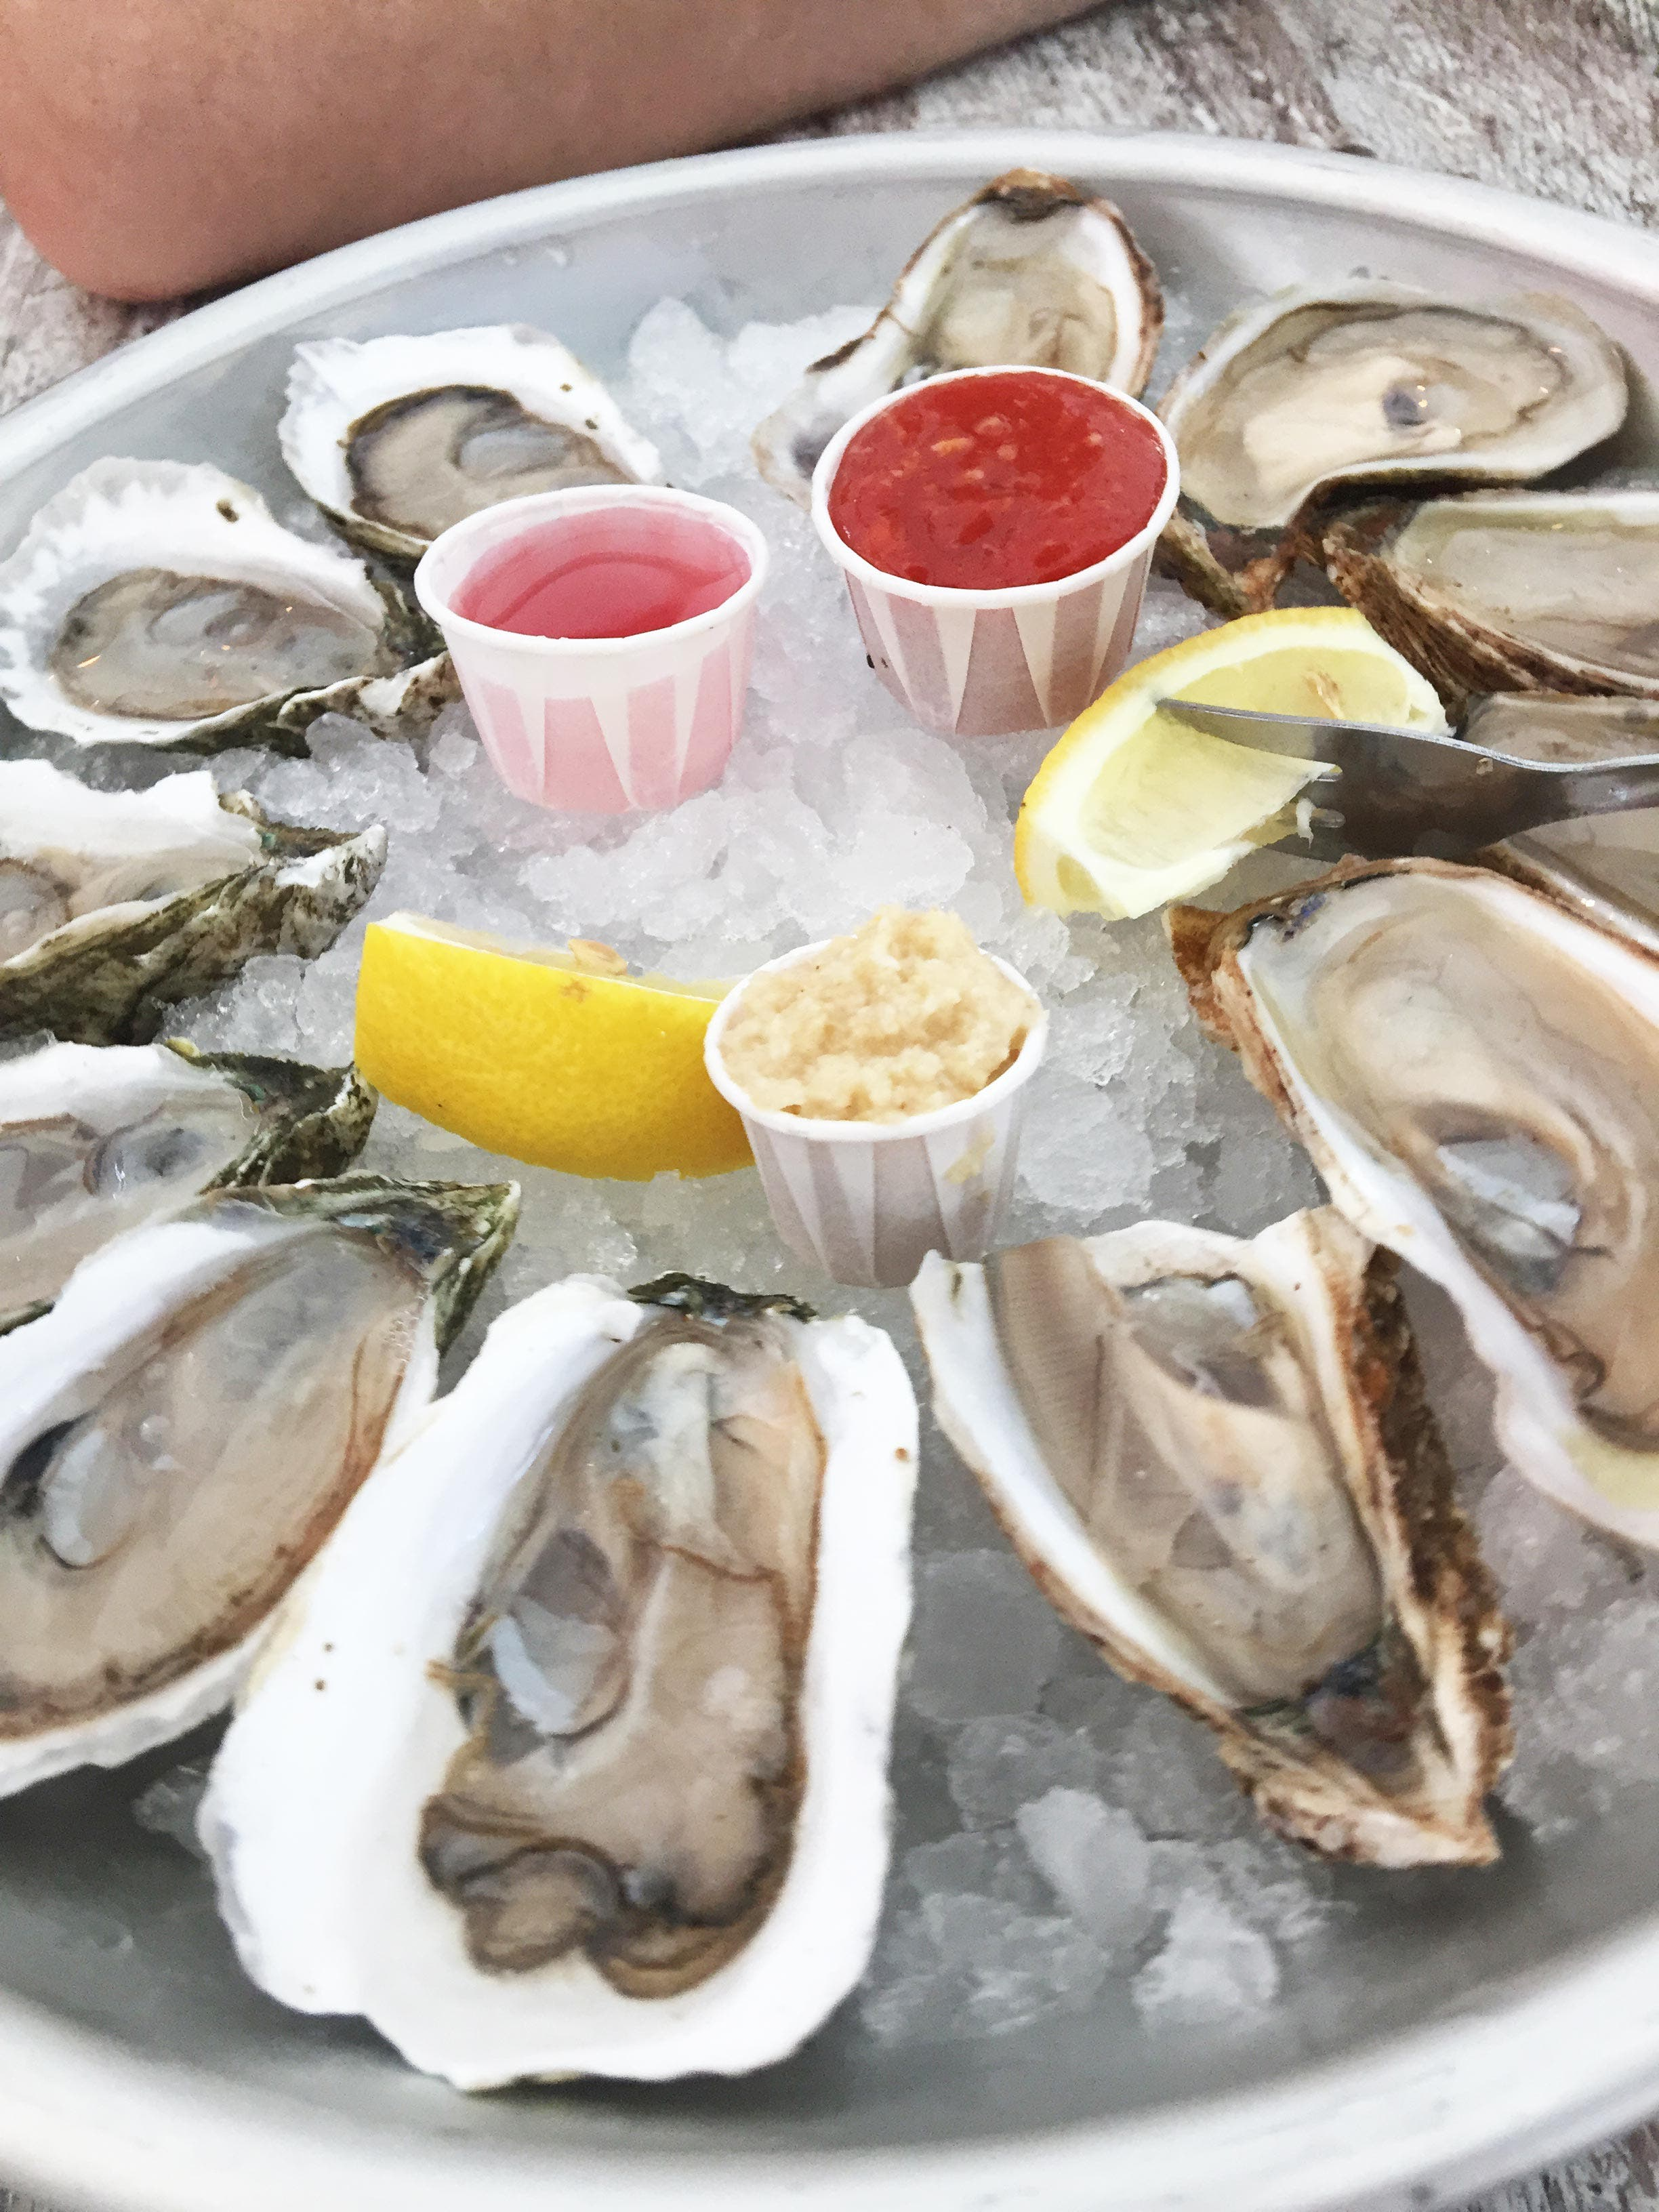 Living in Wellfleet, the world would be my oyster.